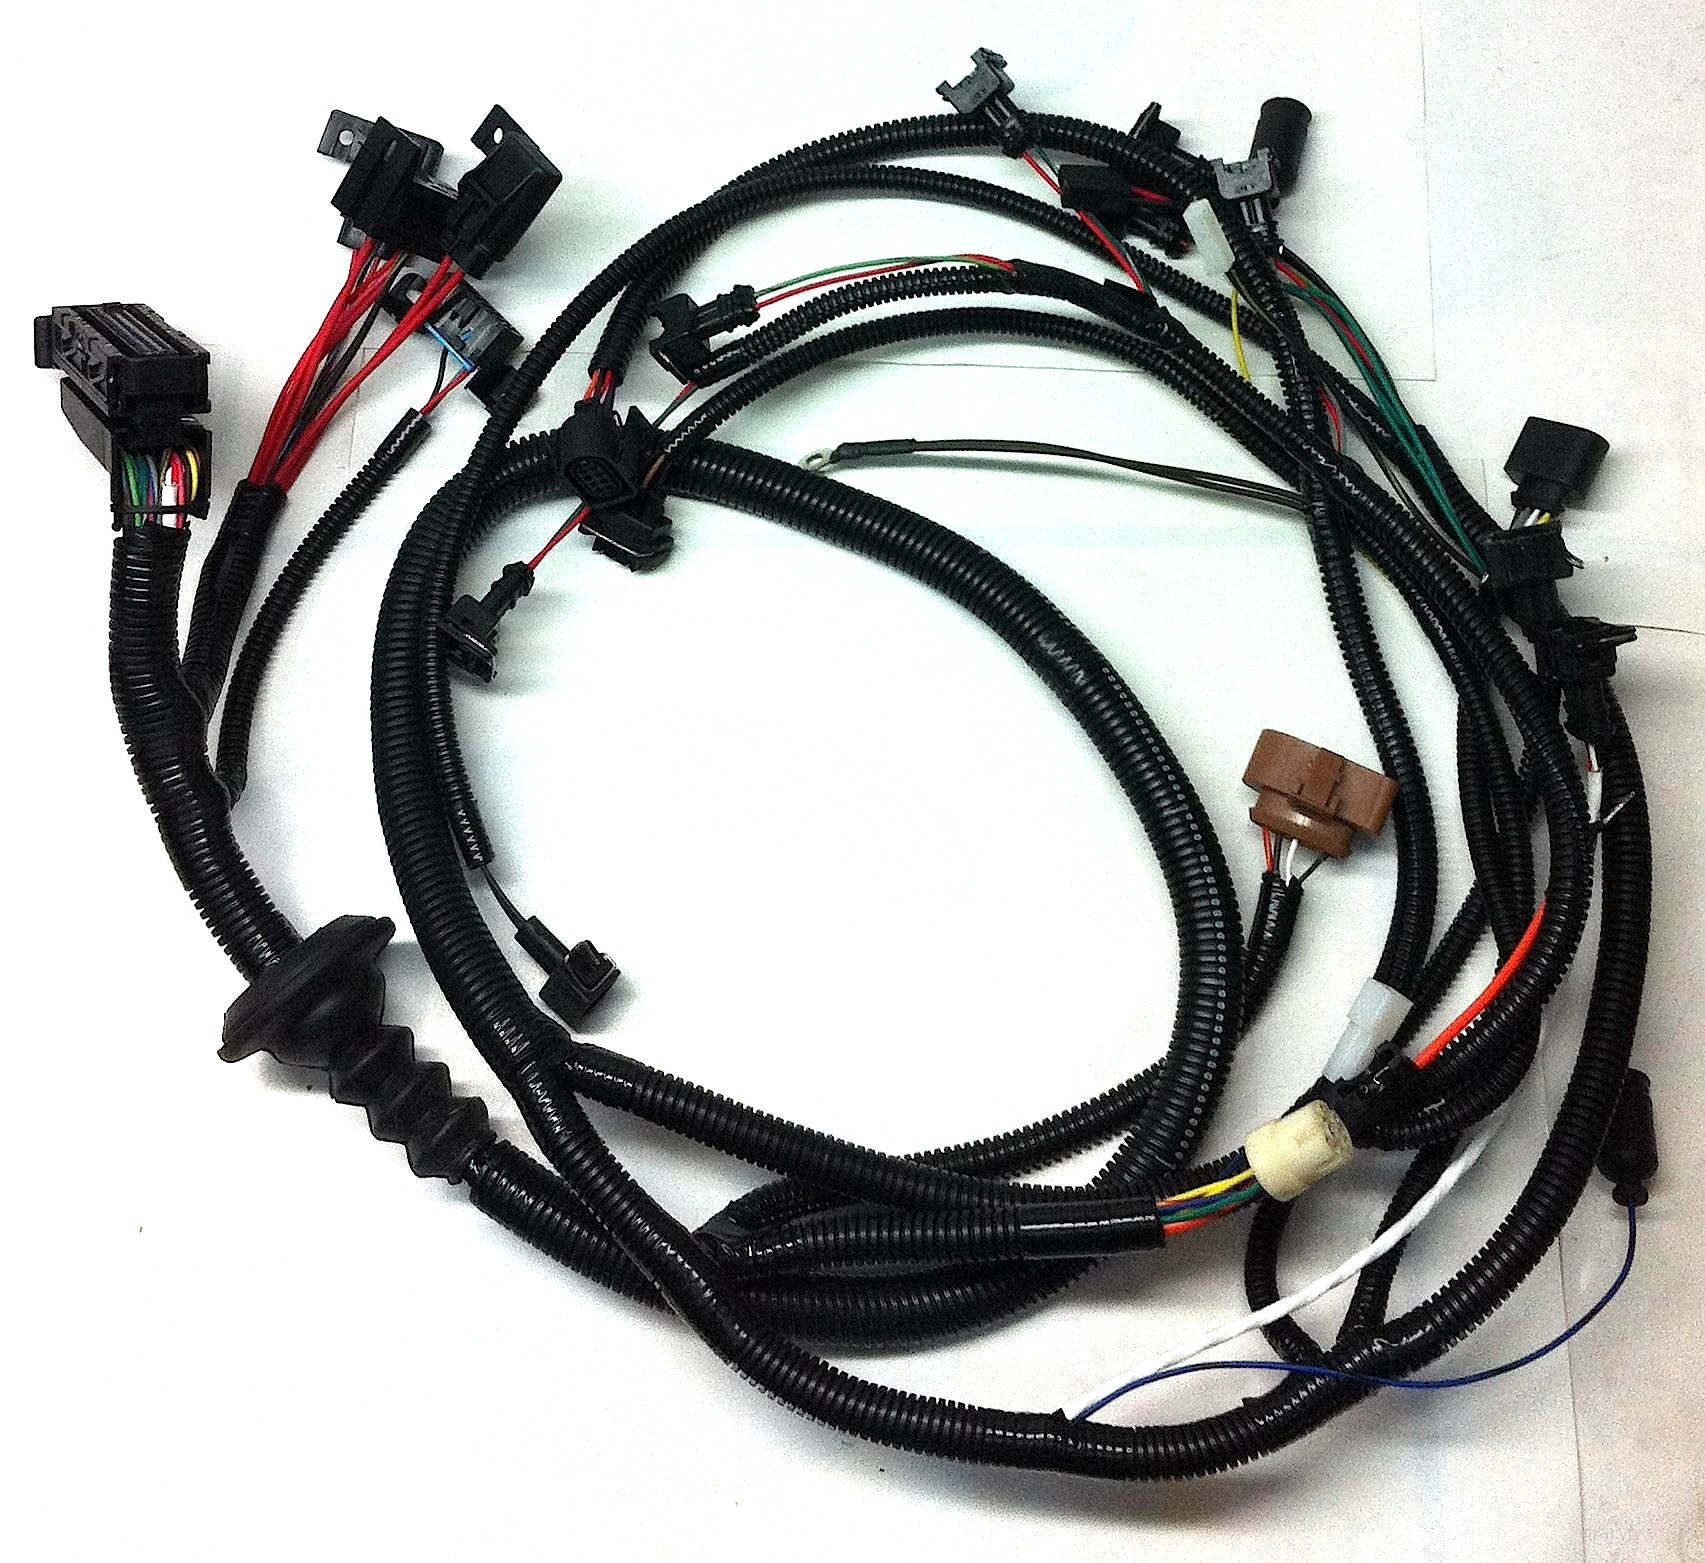 Wiring_Harness_2LR 2lr tiico conversion wiring harness foreign auto & supply, inc engine wiring harness at webbmarketing.co